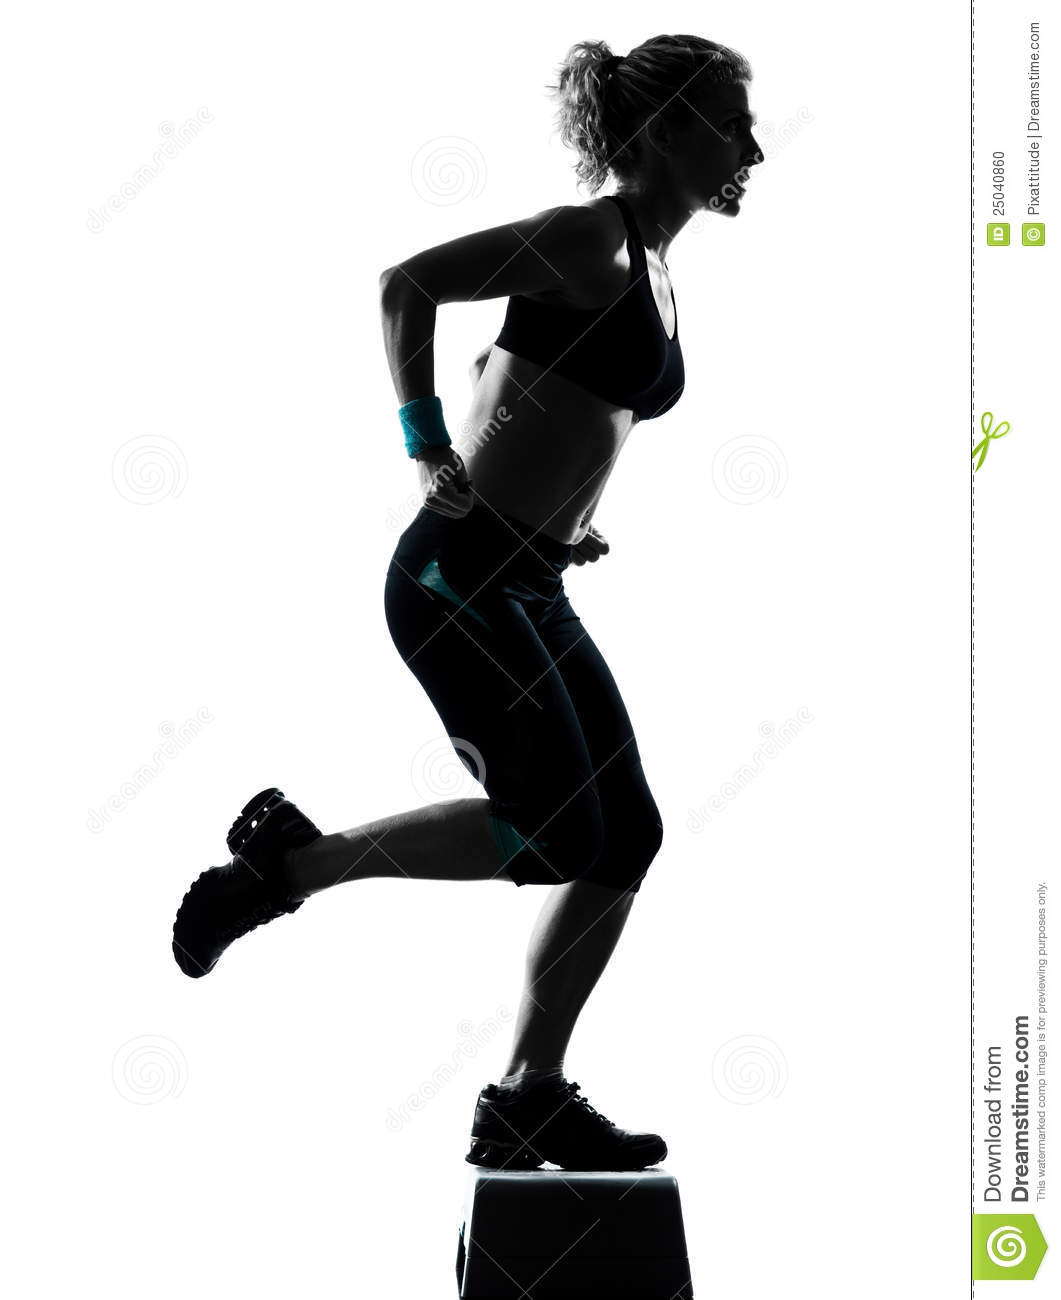 Woman Exercising Step Aerobics Stock Photo - Image: 25040860